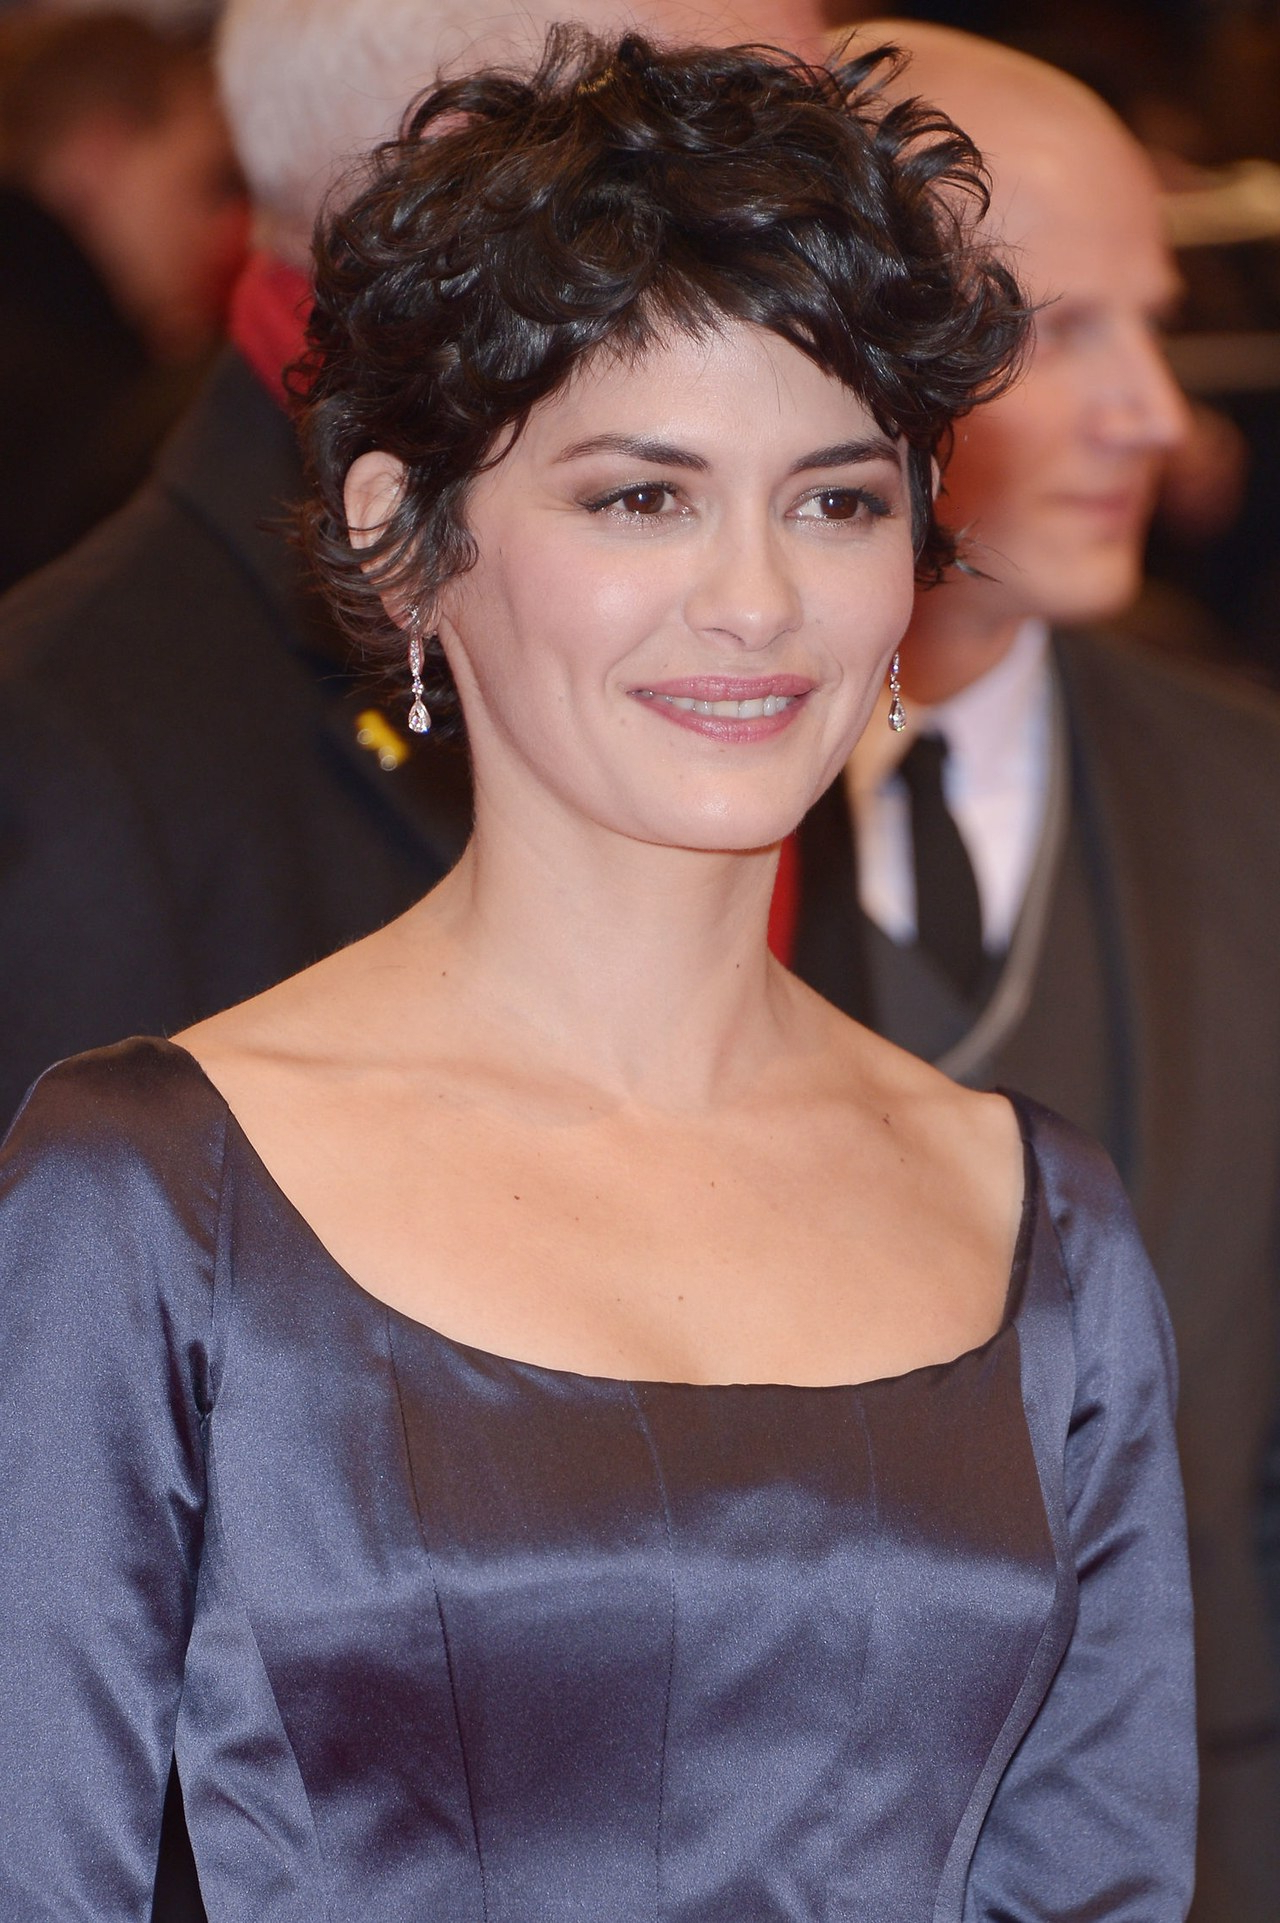 5 Fantastic Short Haircuts That Aren't Bobs On Rita Ora, Zendaya With Audrey Tautou Short Haircuts (View 10 of 25)